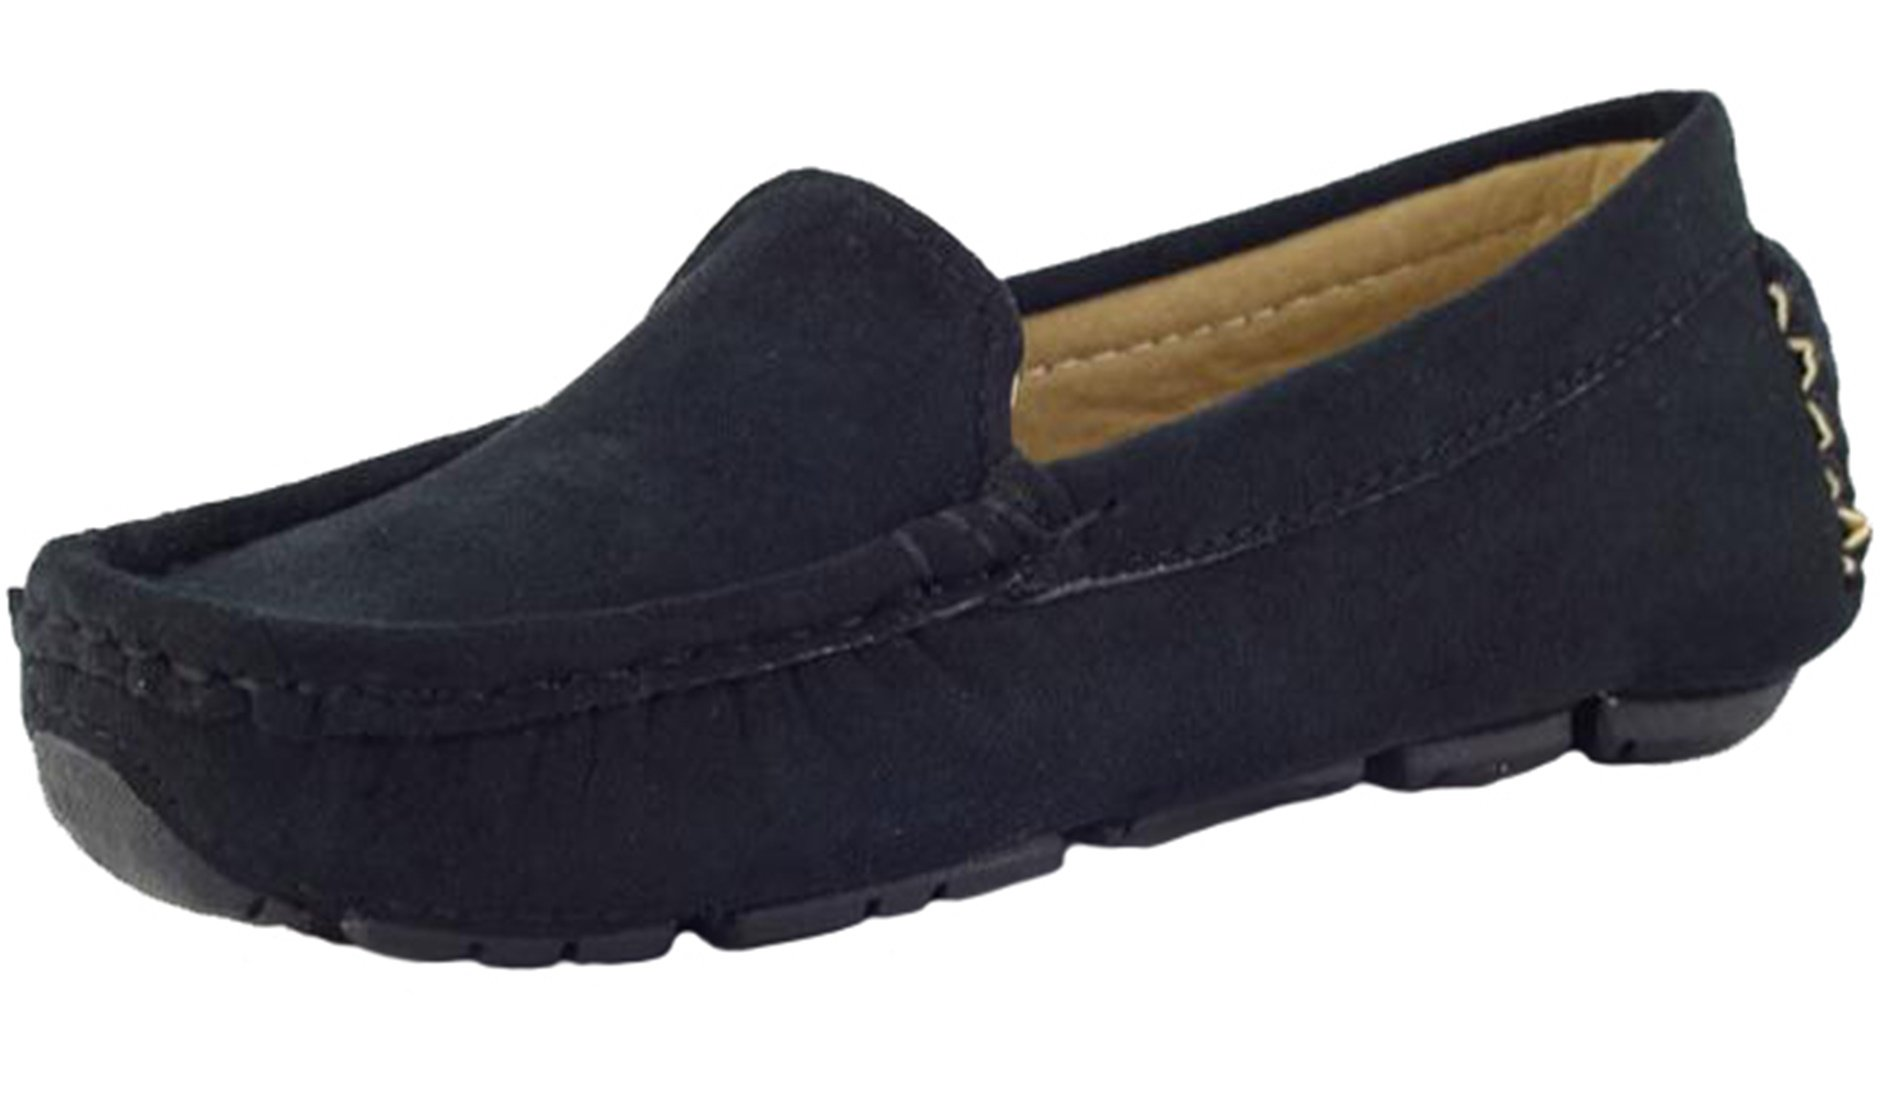 PPXID Girl's Boy's Suede Slip-on Loafers Casual Shoes(Toddler/Little Kid/Big Kid)-Black 8 US Size